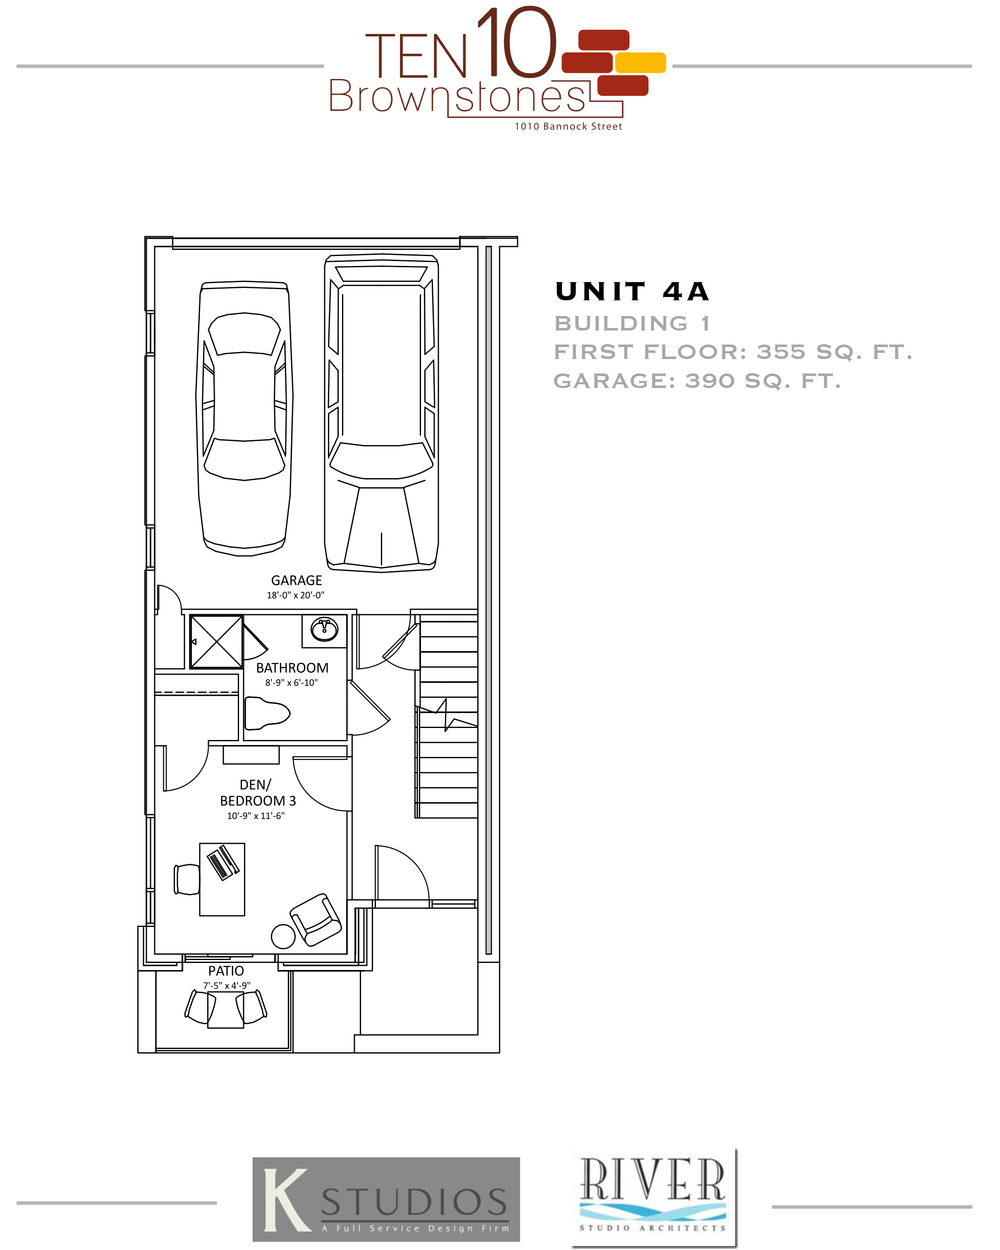 Click image to view & download Unit 4A floor plan